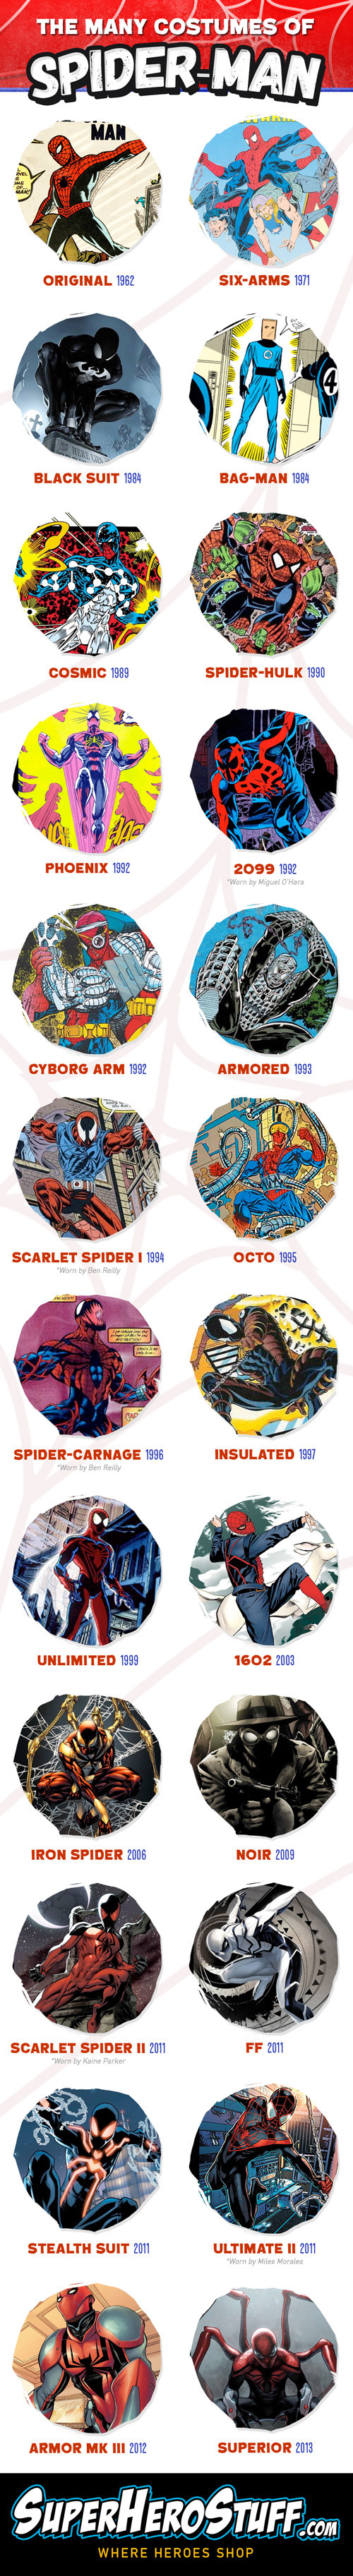 The Many Costumes of Spider-Man Infographic